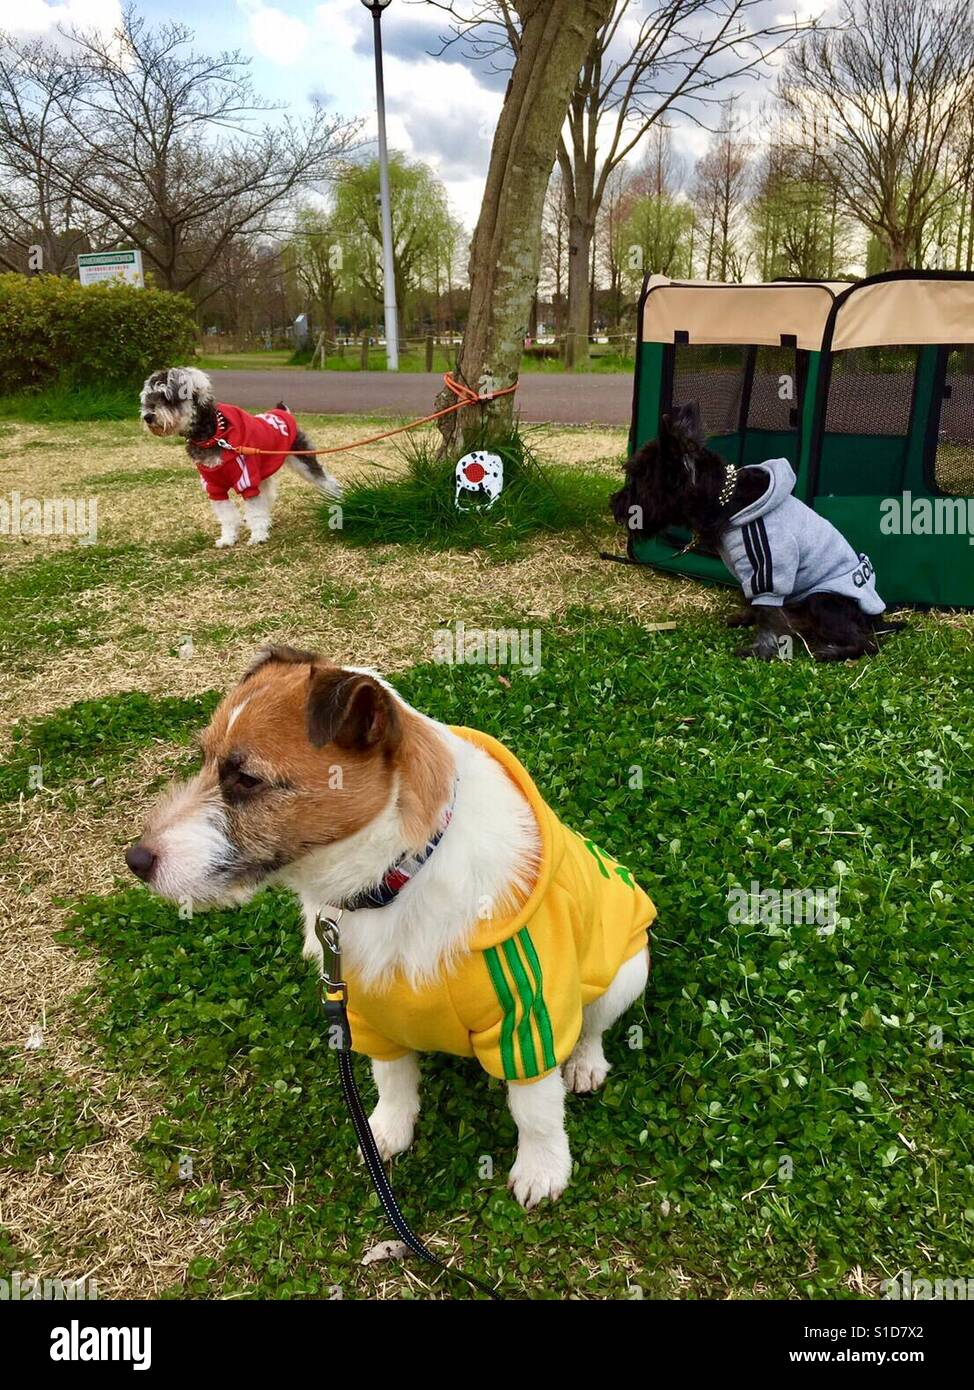 Dogs looking for someone who can play with - Stock Image